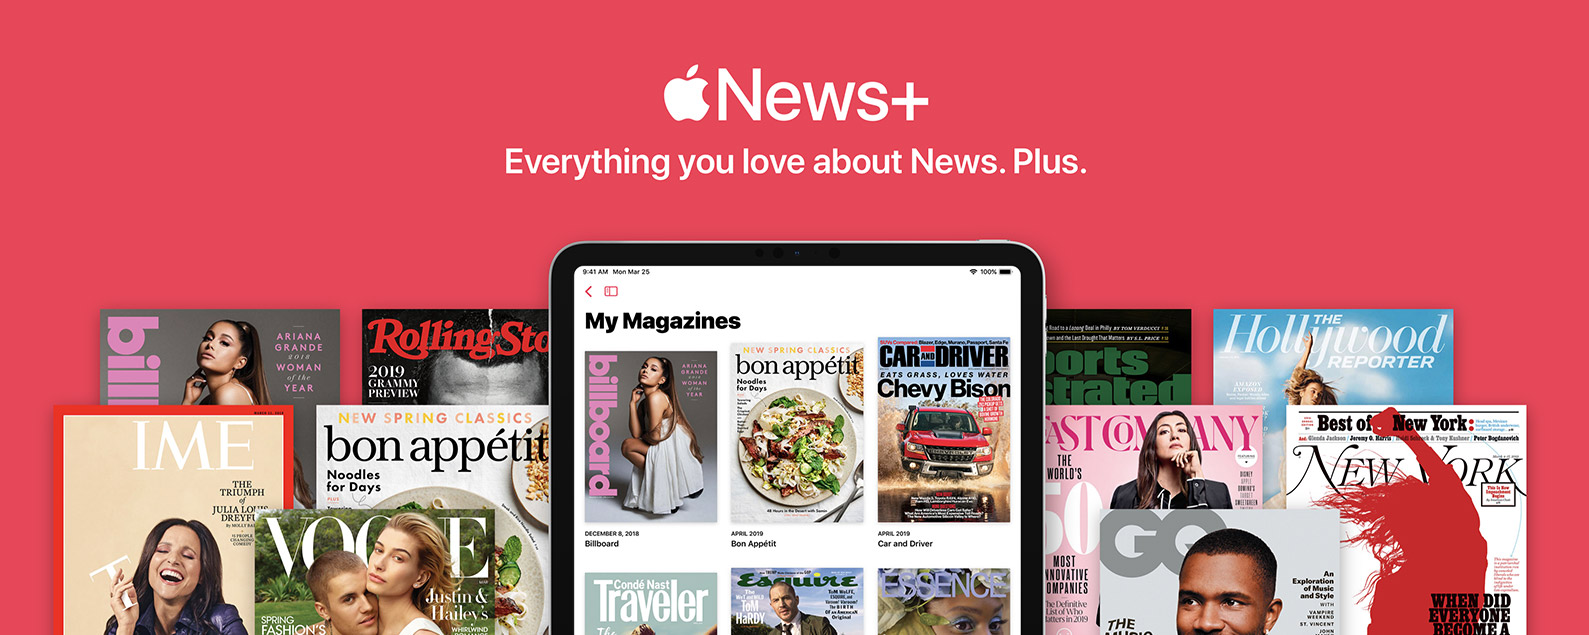 Apple News Plus: What You Need to Know Before Signing Up